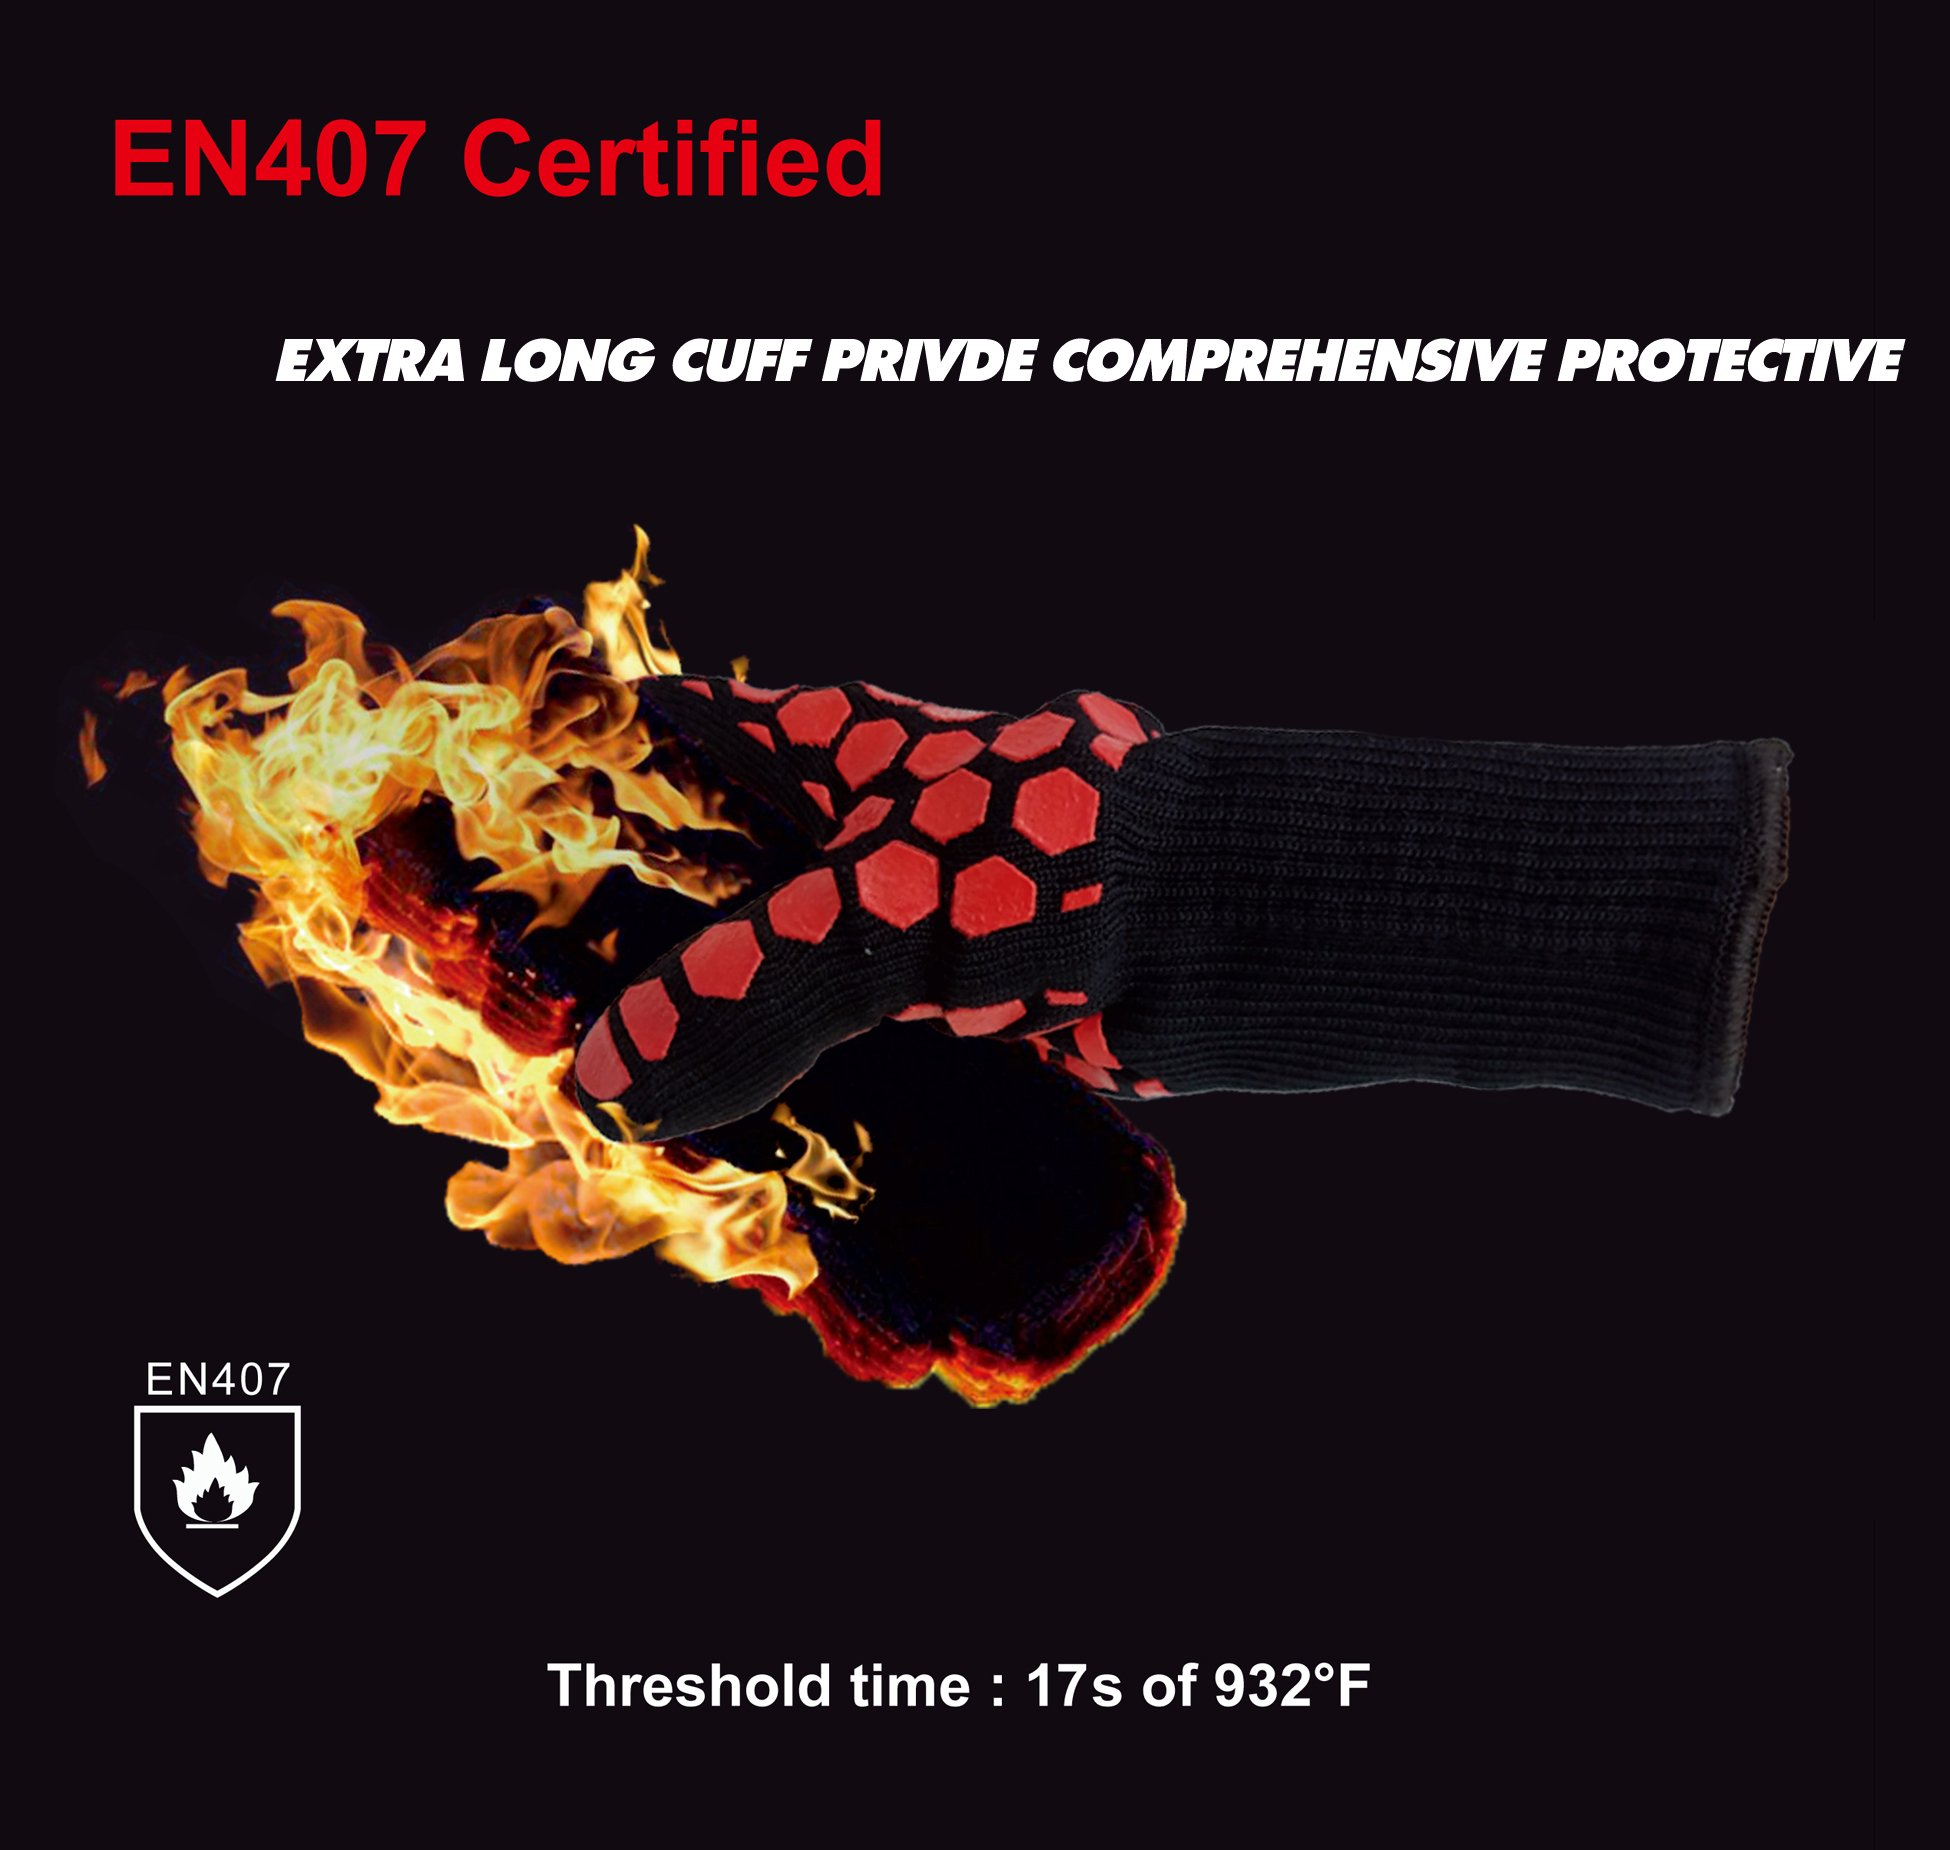 Heat Resistant Oven Gloves: EN407 Certified Withstand 932 °F, Double Layers Silicone Coating, BBQ Gloves & Oven Mitts For Cooking, Kitchen, Fireplace, Grilling, 1 Pair, Extended Long Cuff